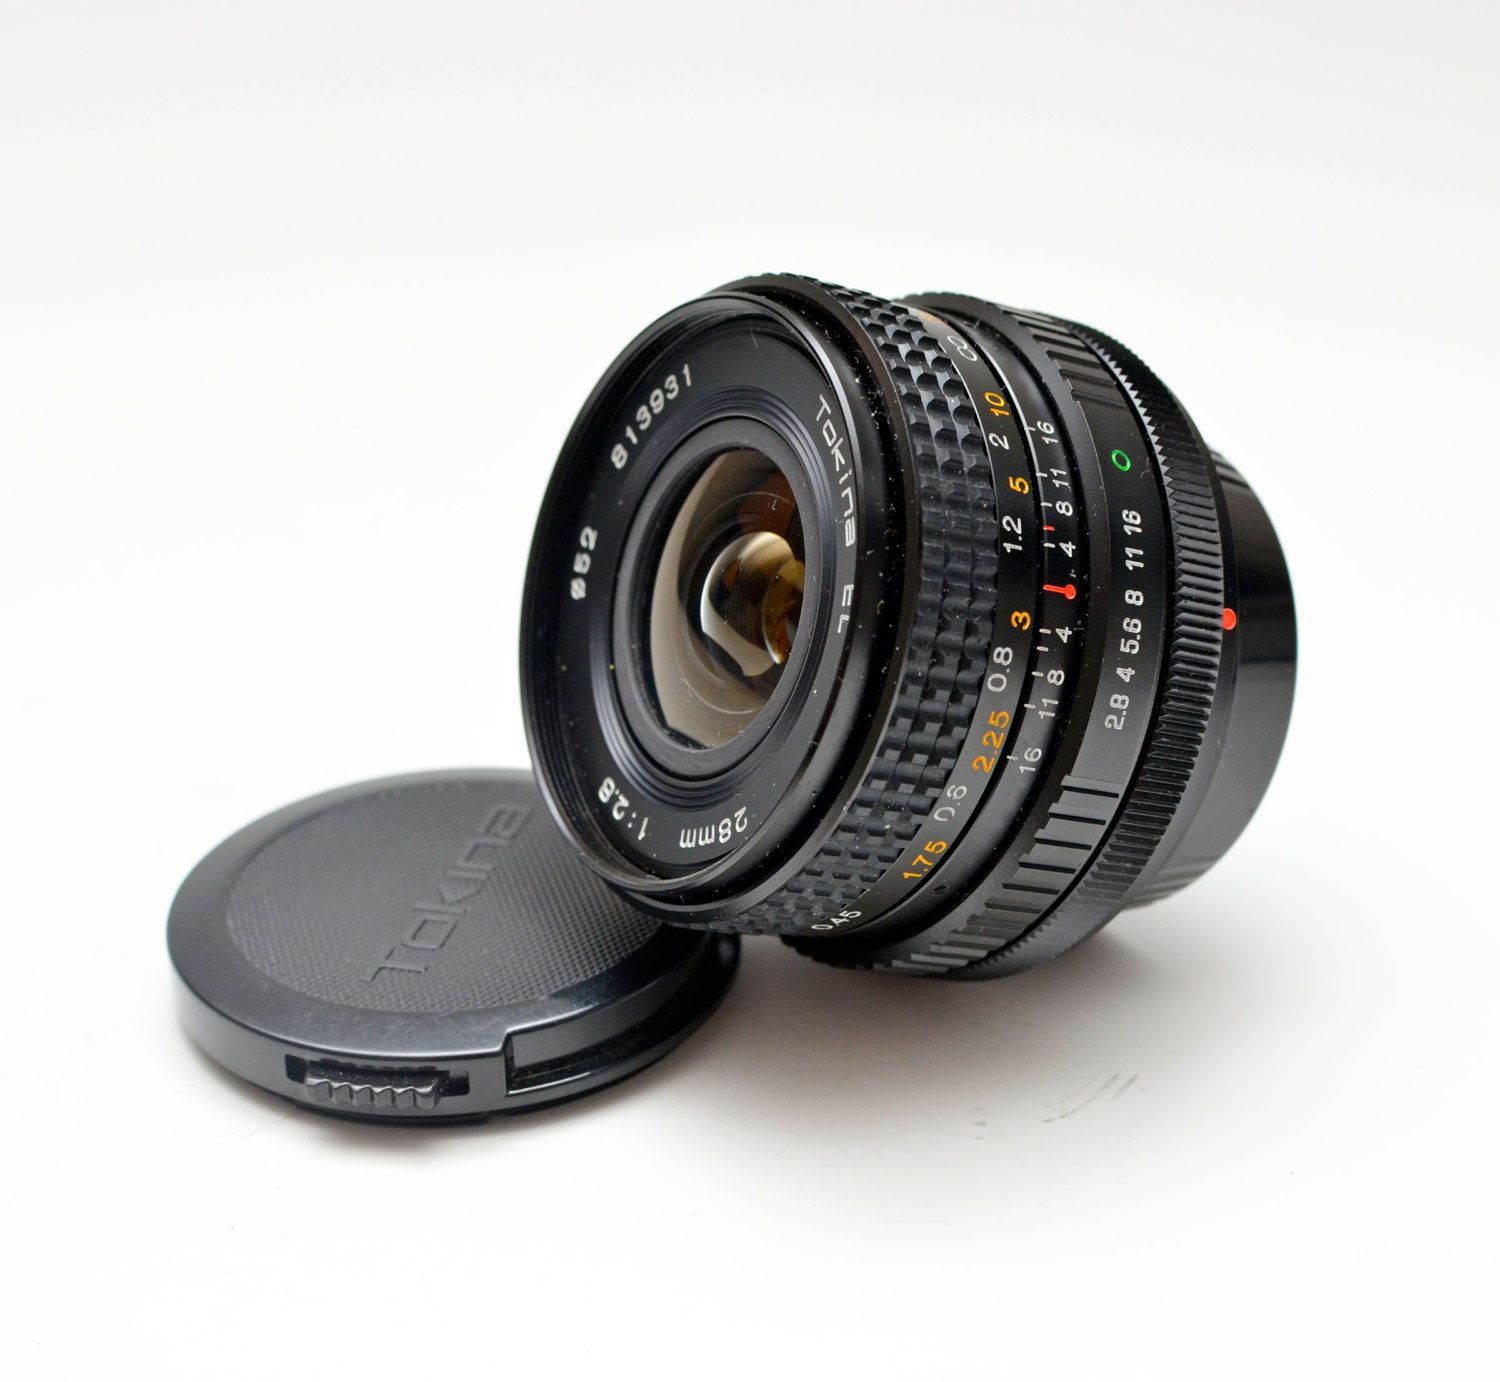 Tokina Rmc F2 8 28mm Wide Angle Camera Lens Canon Fd Mount Etsy Camera Lenses Canon Camera Lens Cameras And Accessories